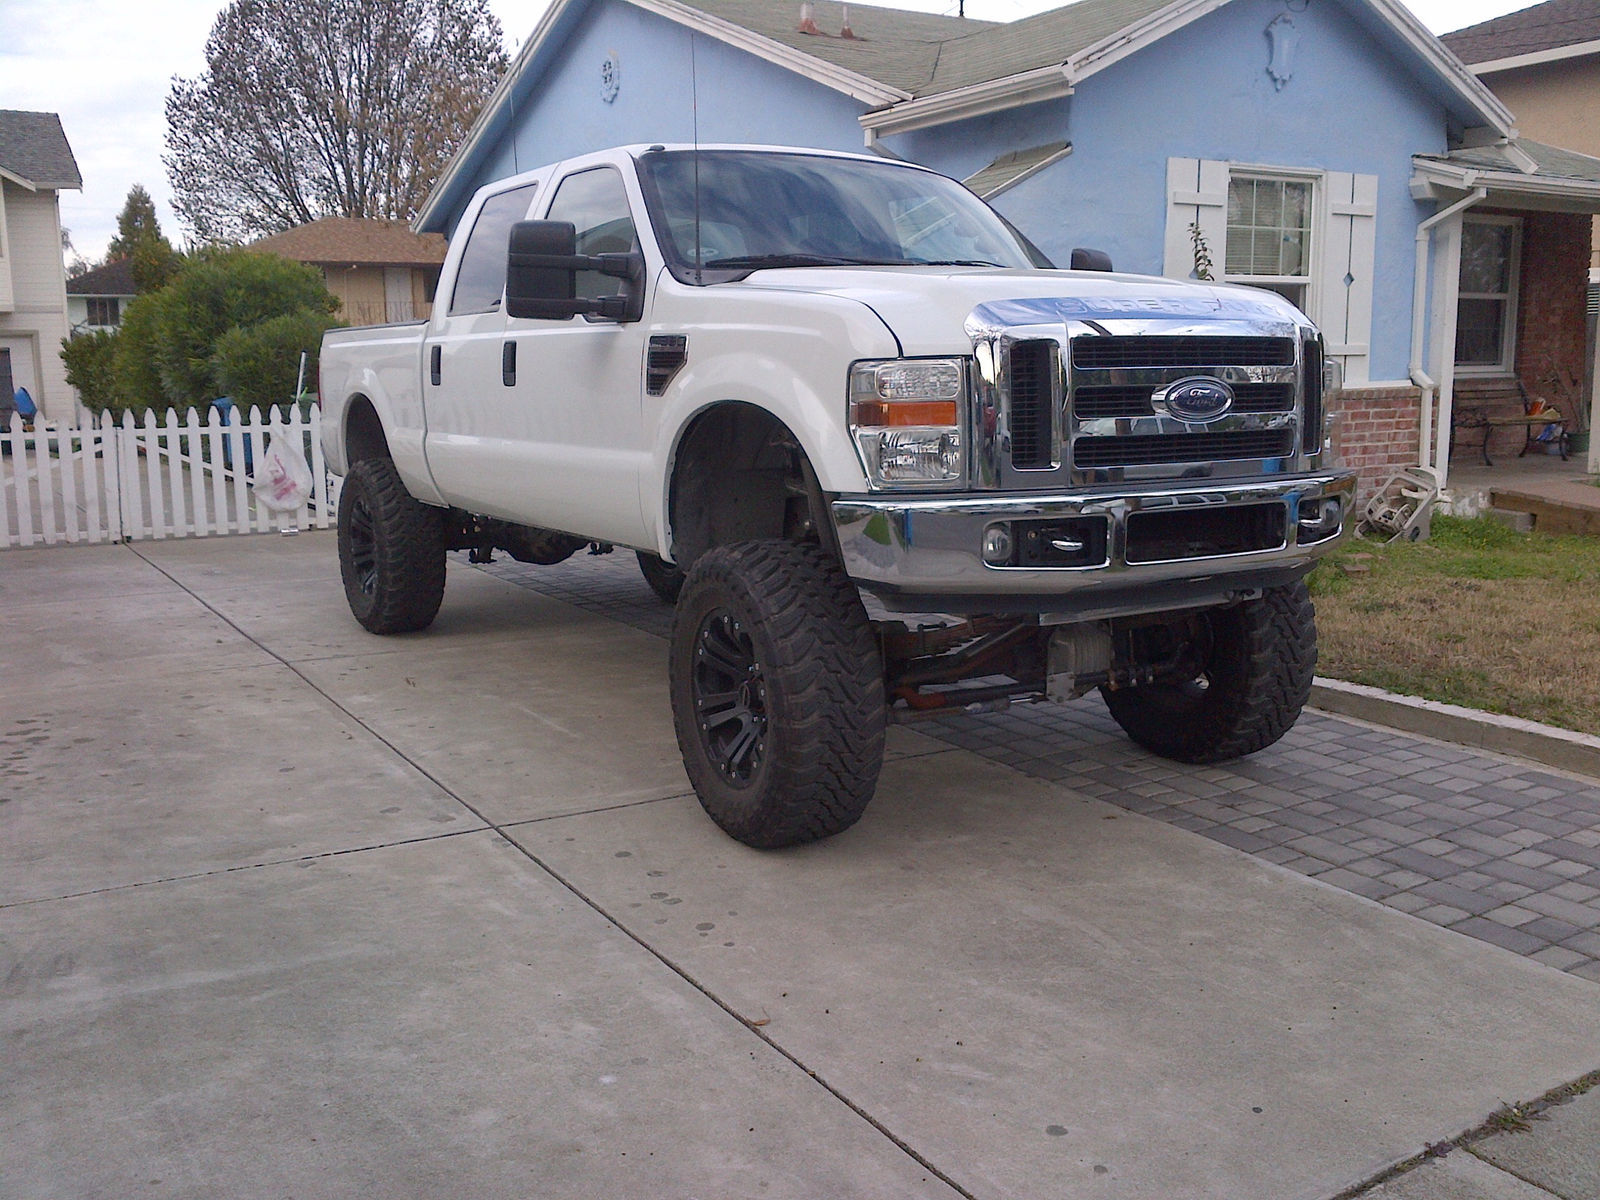 2001 Ford F-350 Super Duty | 2001 Superduty